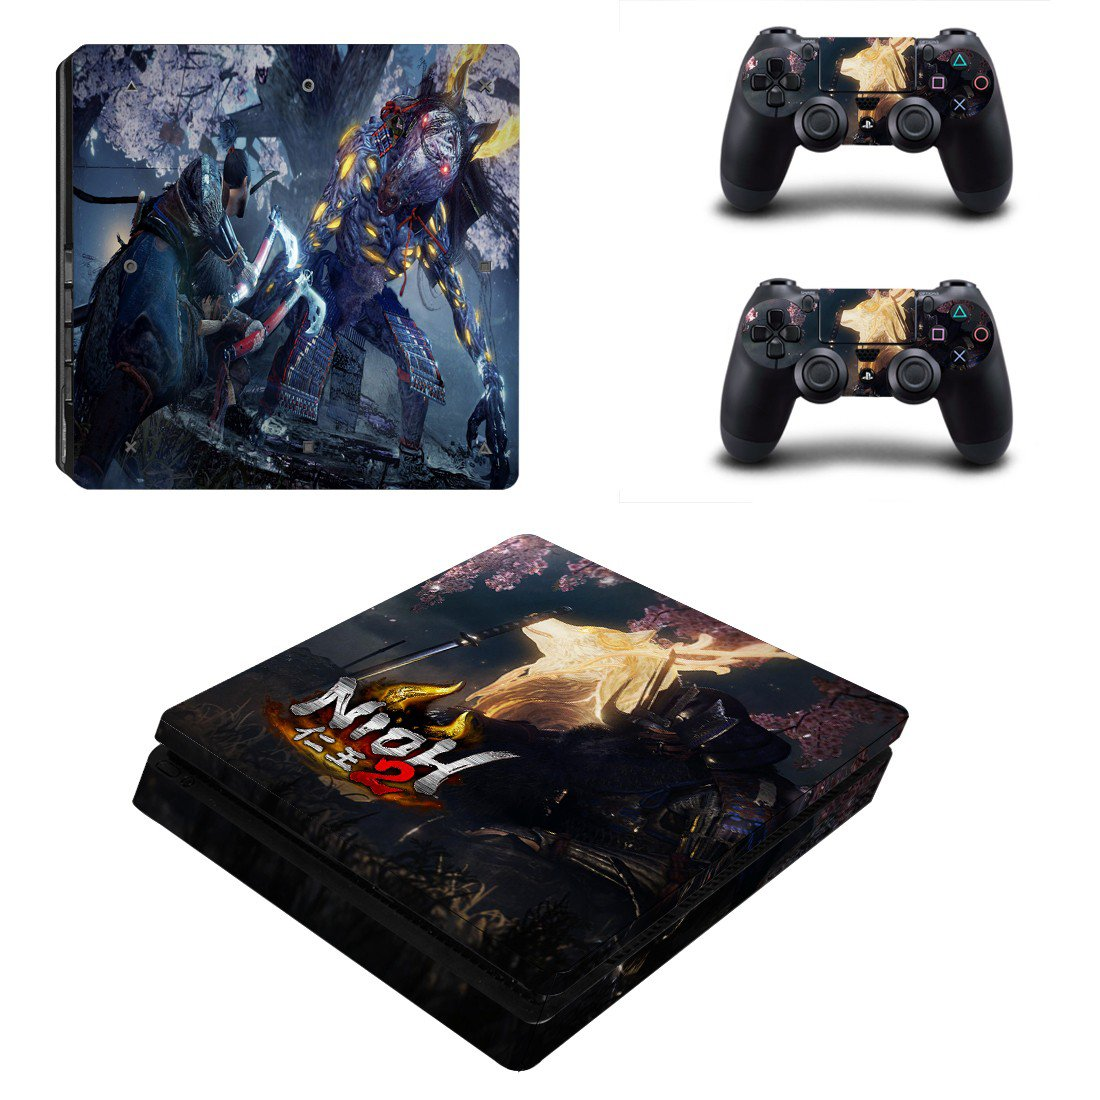 Nioh 2 decal skin for PS4 Slim Console & Controllers